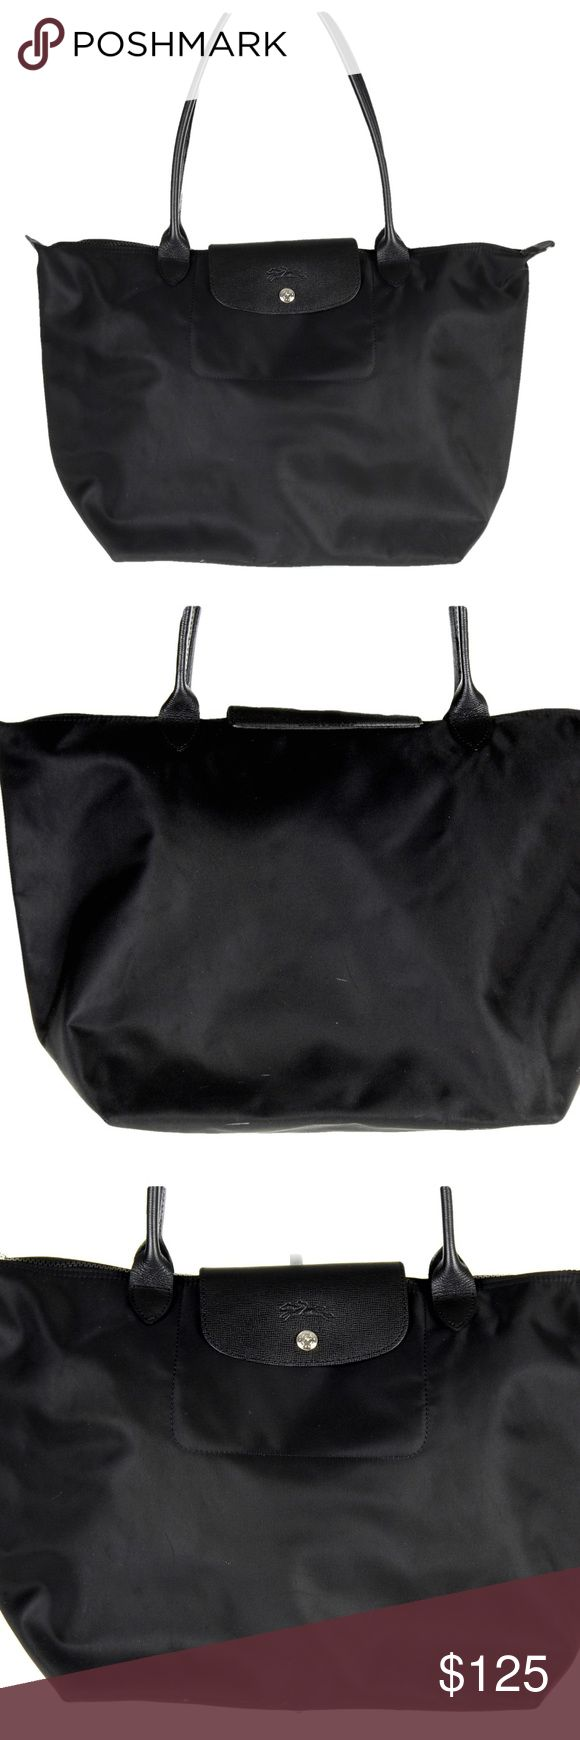 """Longchamp Le Pliage Neo Black Foldable Tote Large Longchamp Le Pliage Neo  LargeTote  Top zip with logo-stamped snap-flap tab closure. Interior cell-phone pocket. Water-resistant lining. Nylon with leather trim. 13""""W x 12""""H x 7 ¾""""D. 8 ½"""" strap drop.  Floor Model Pictures of the actual bag and not stock photos.  •Purchased from a high end US Retailer. Floor Model.  Might be marks in the finish from being on display. Longchamp Bags Totes"""